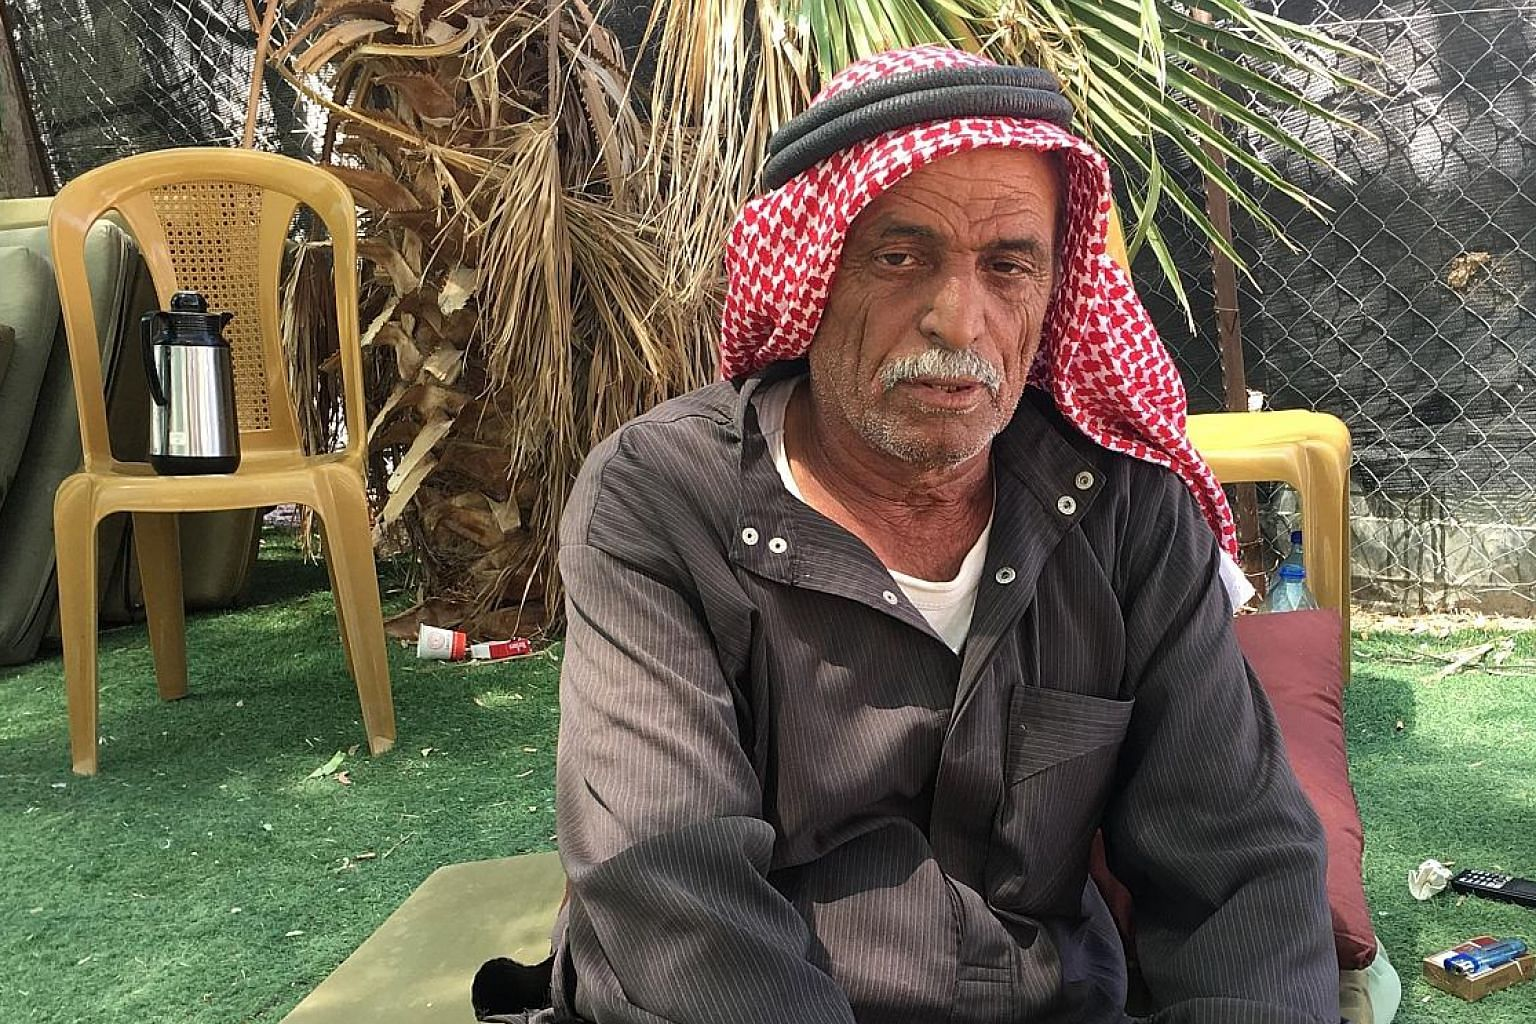 Mr Ahmad Jahalin worries about the fate of his birthplace, Khan al-Ahmar, in the barren mountains of the Judean desert.